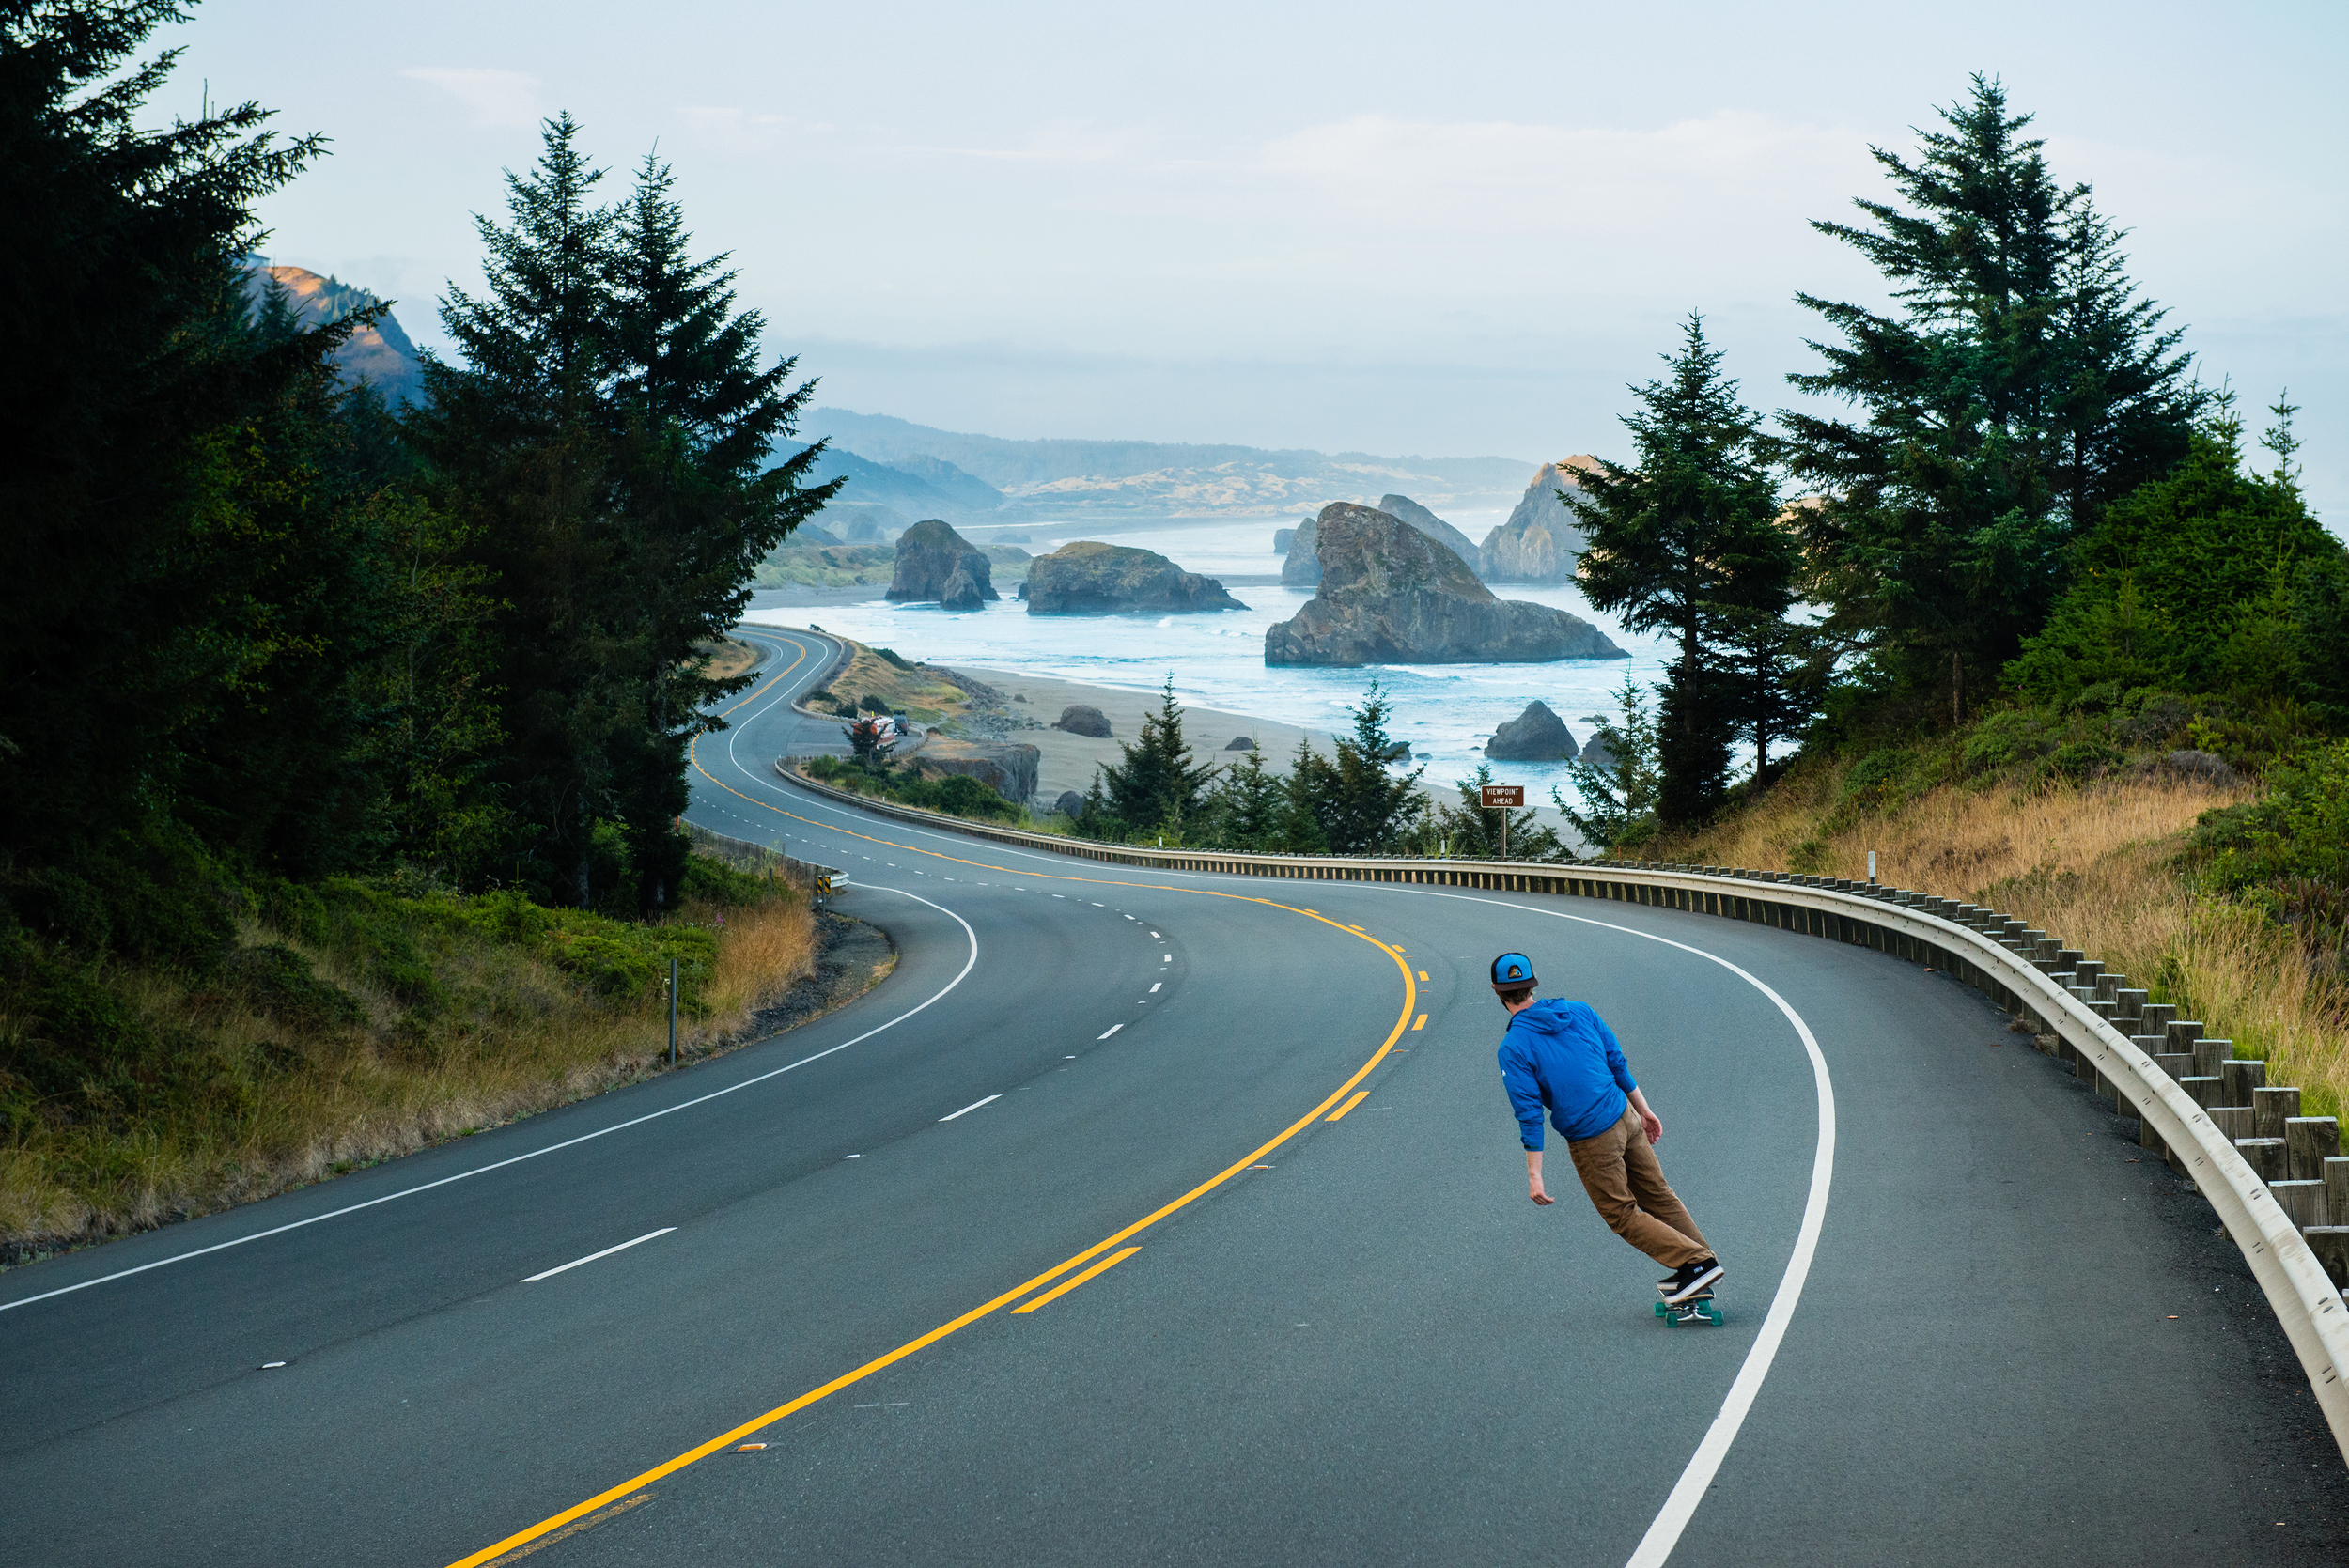 Roads this iconic were designed to be skated: Highway 101, Oregon.